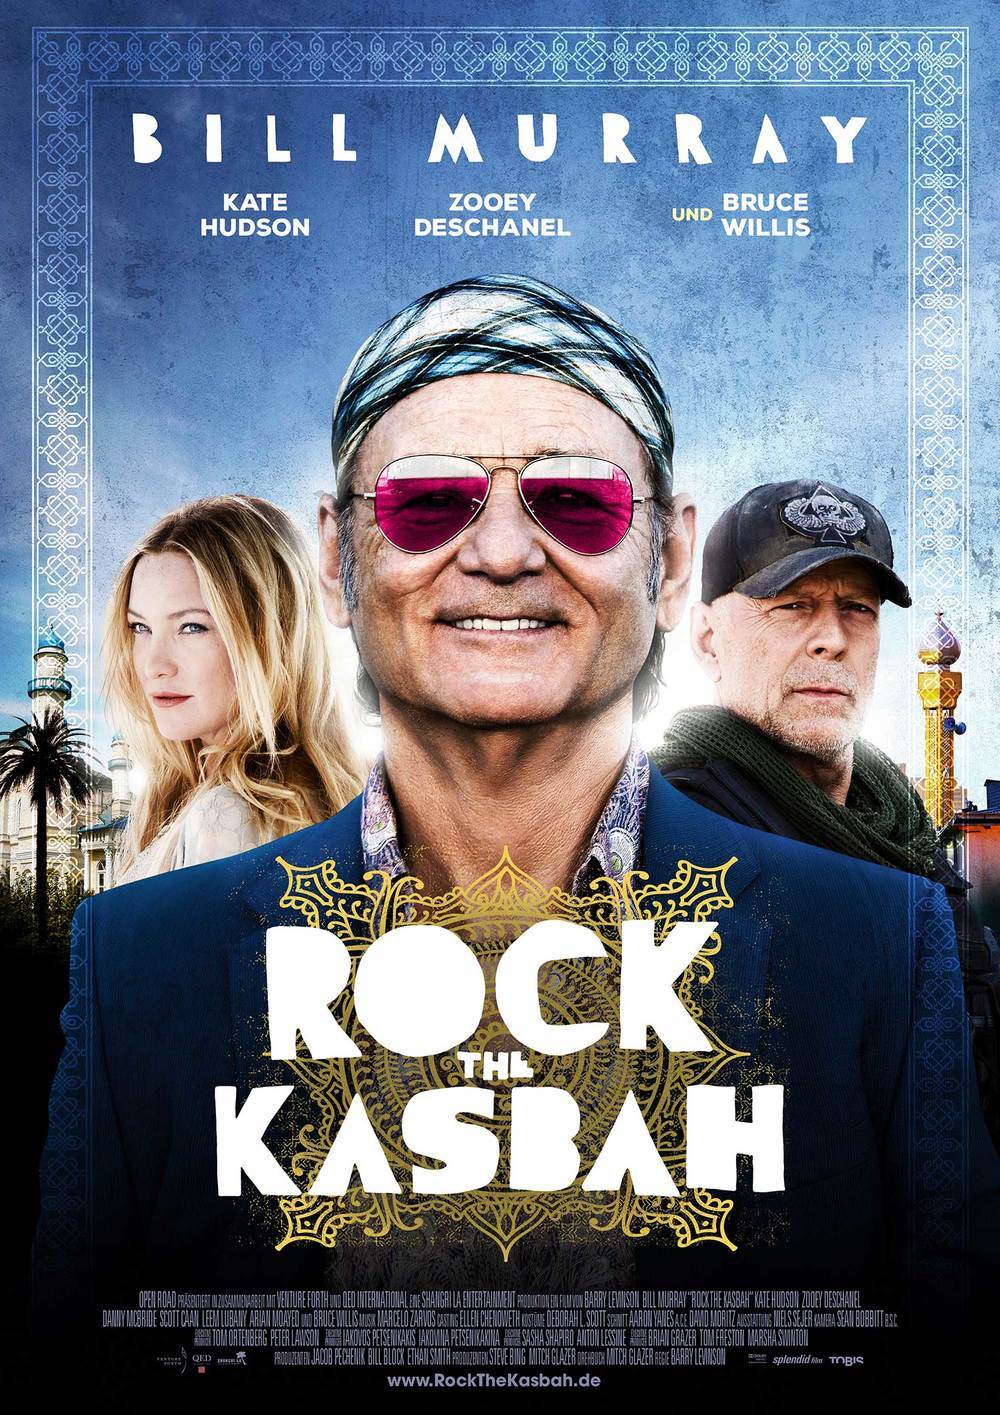 "Tobis<a href=""/rock-the-kasbah"">→</a><strong>Adaption</strong>"